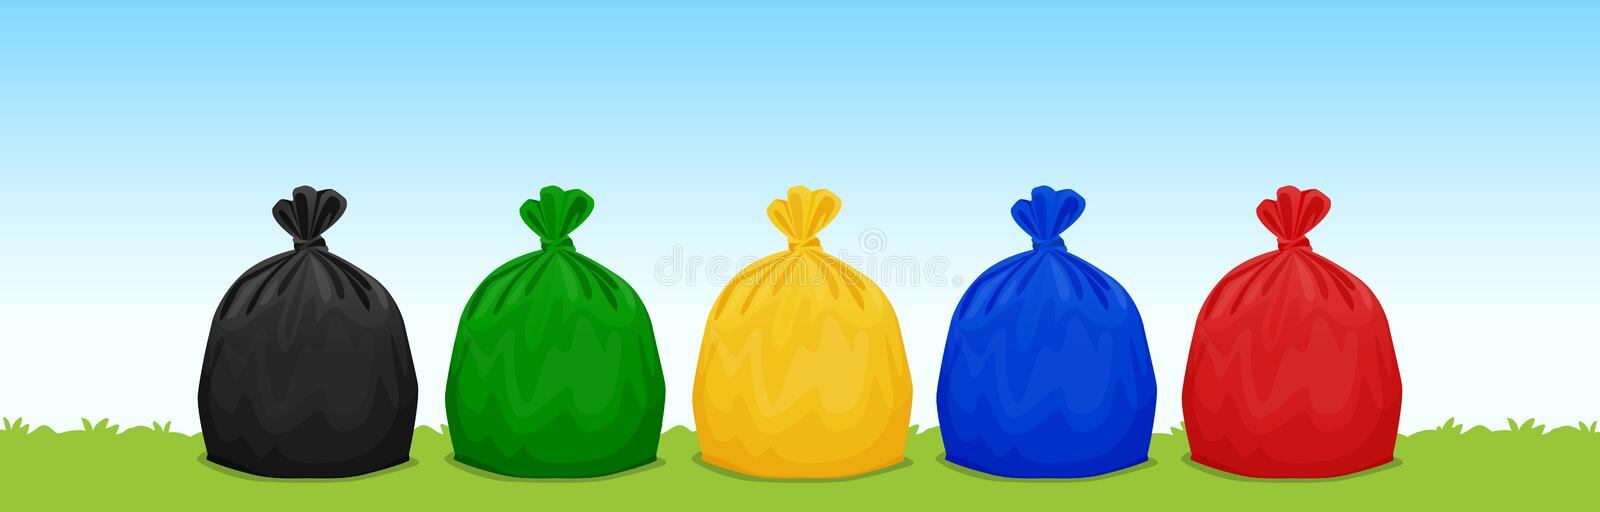 Plastic waste bags black, green, yellow, blue and red on the grass and sky background, set of colored garbage waste bags plastic vector illustration